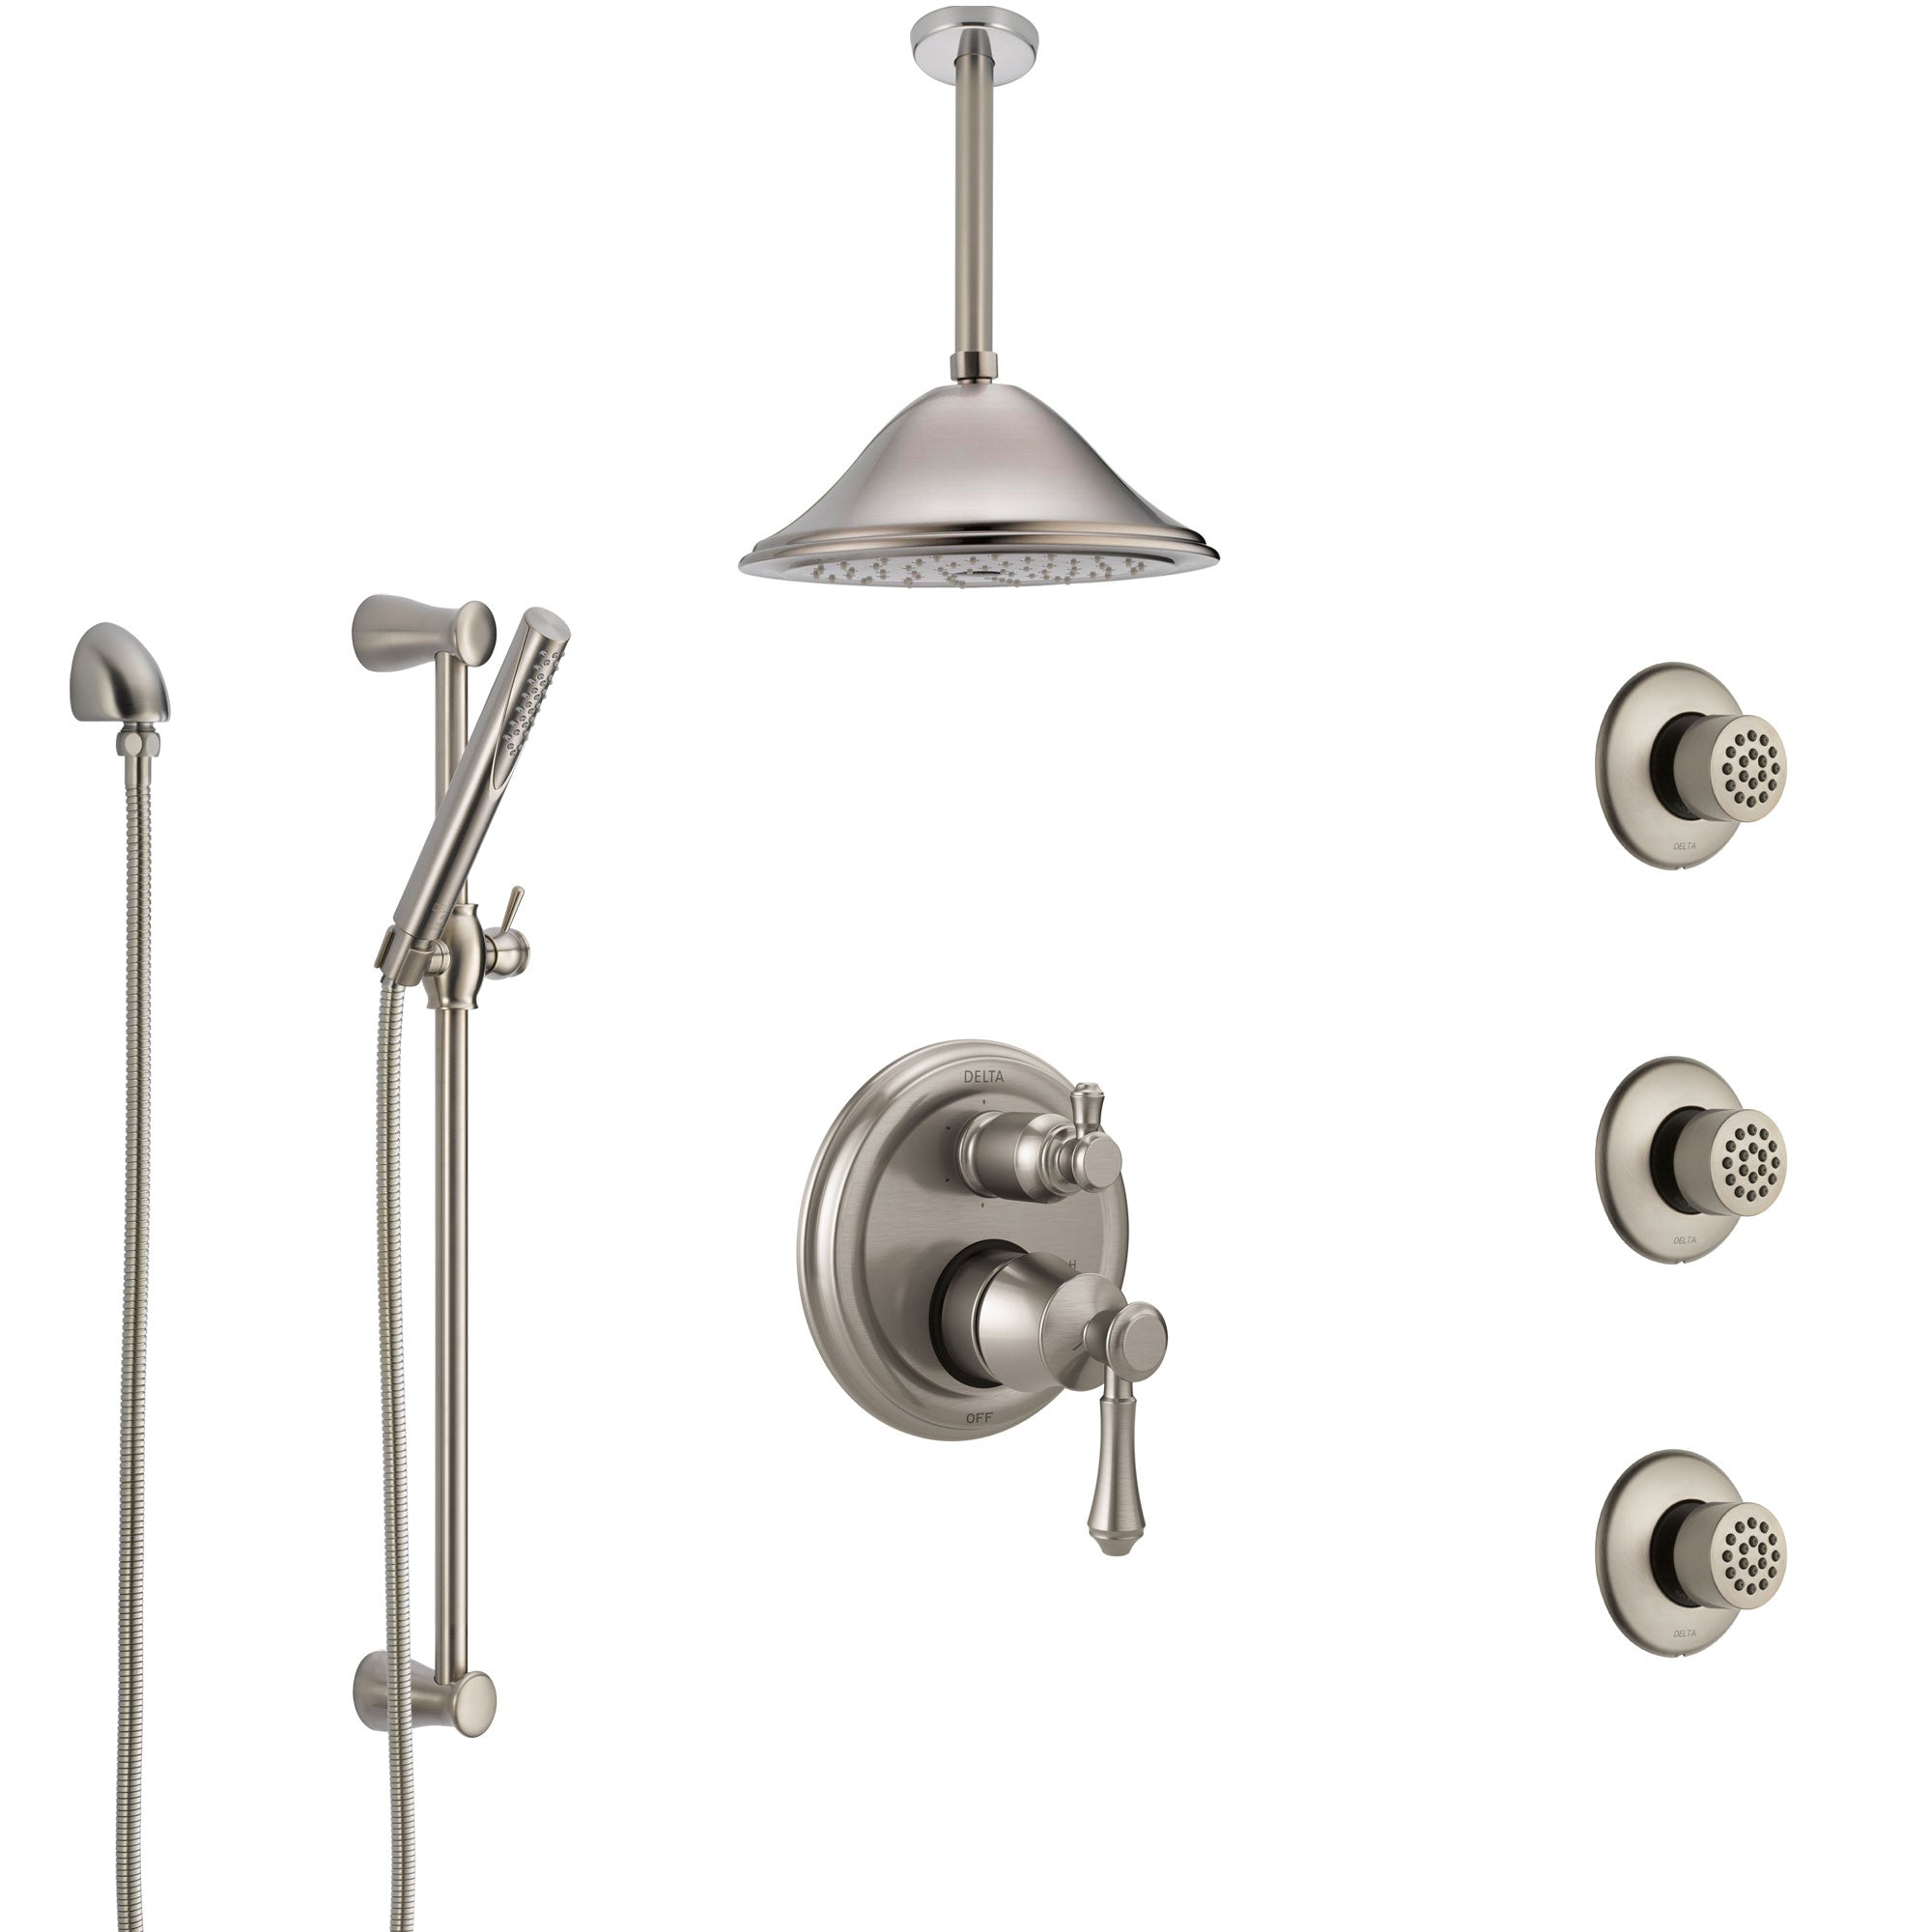 Delta Cassidy Stainless Steel Finish Integrated Diverter Shower System Control Handle, Ceiling Showerhead, 3 Body Sprays, and Hand Shower SS24997SS10